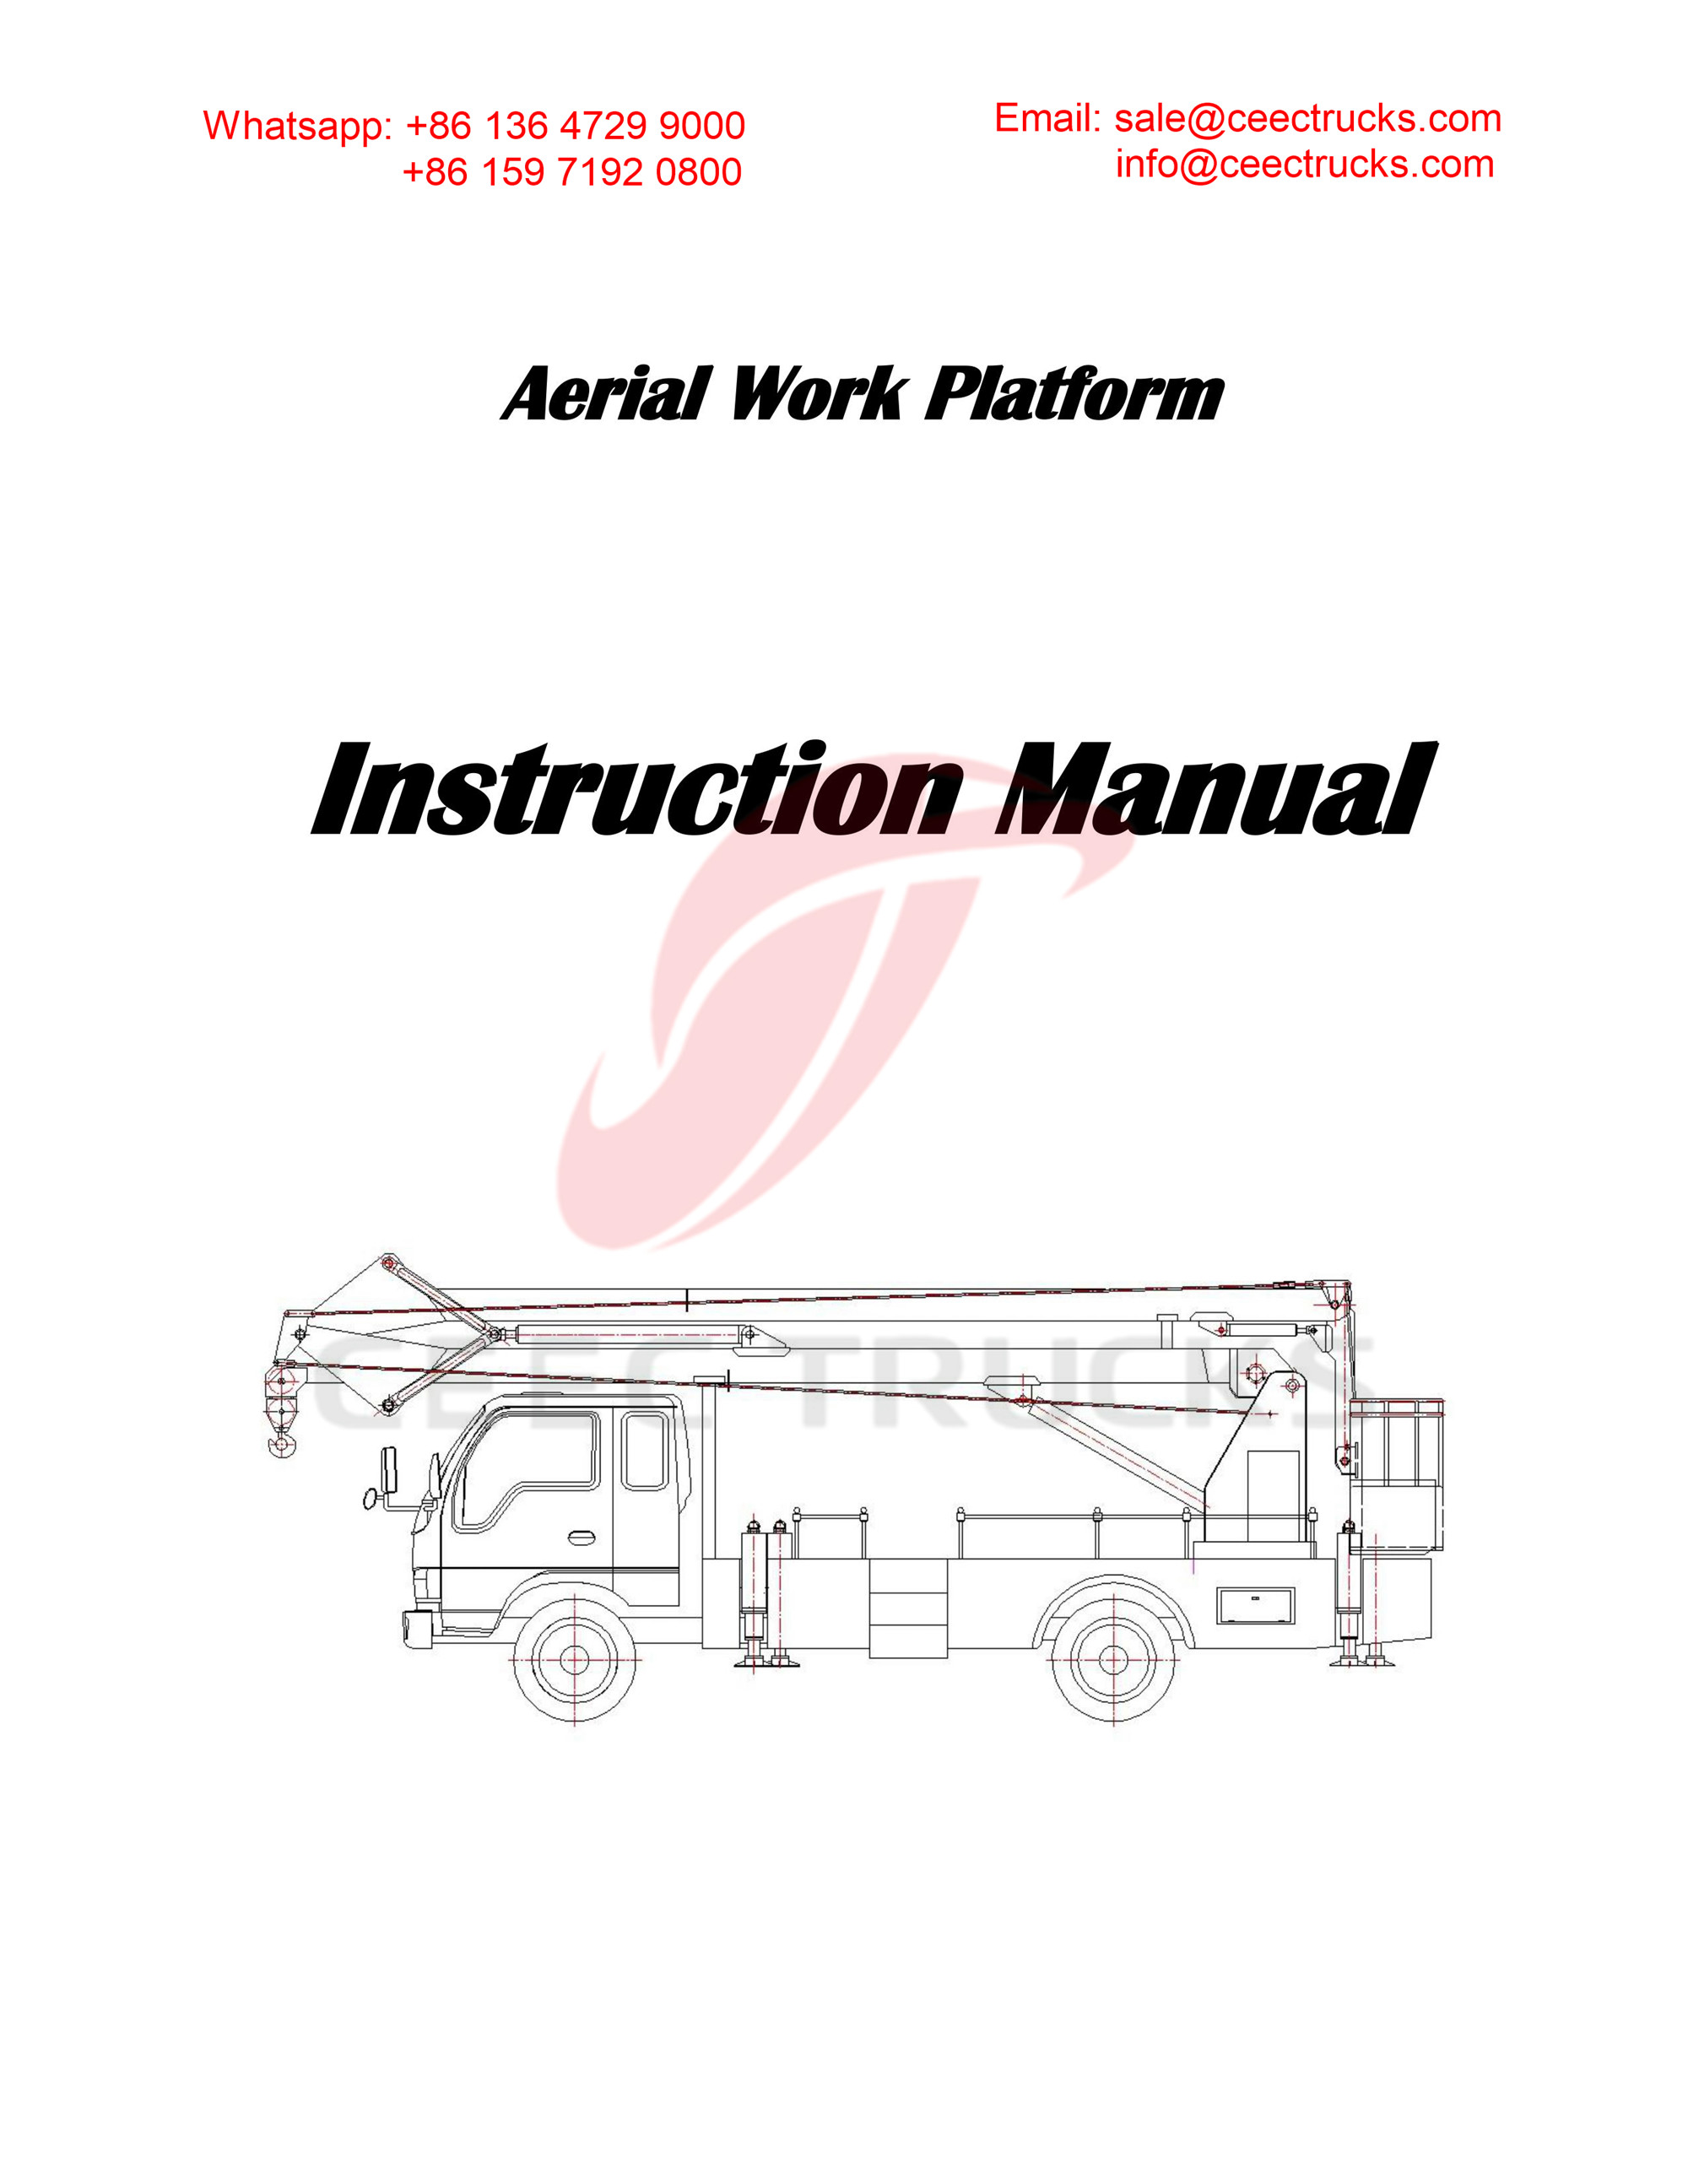 ISUZU 18m aerial working platform owner manual